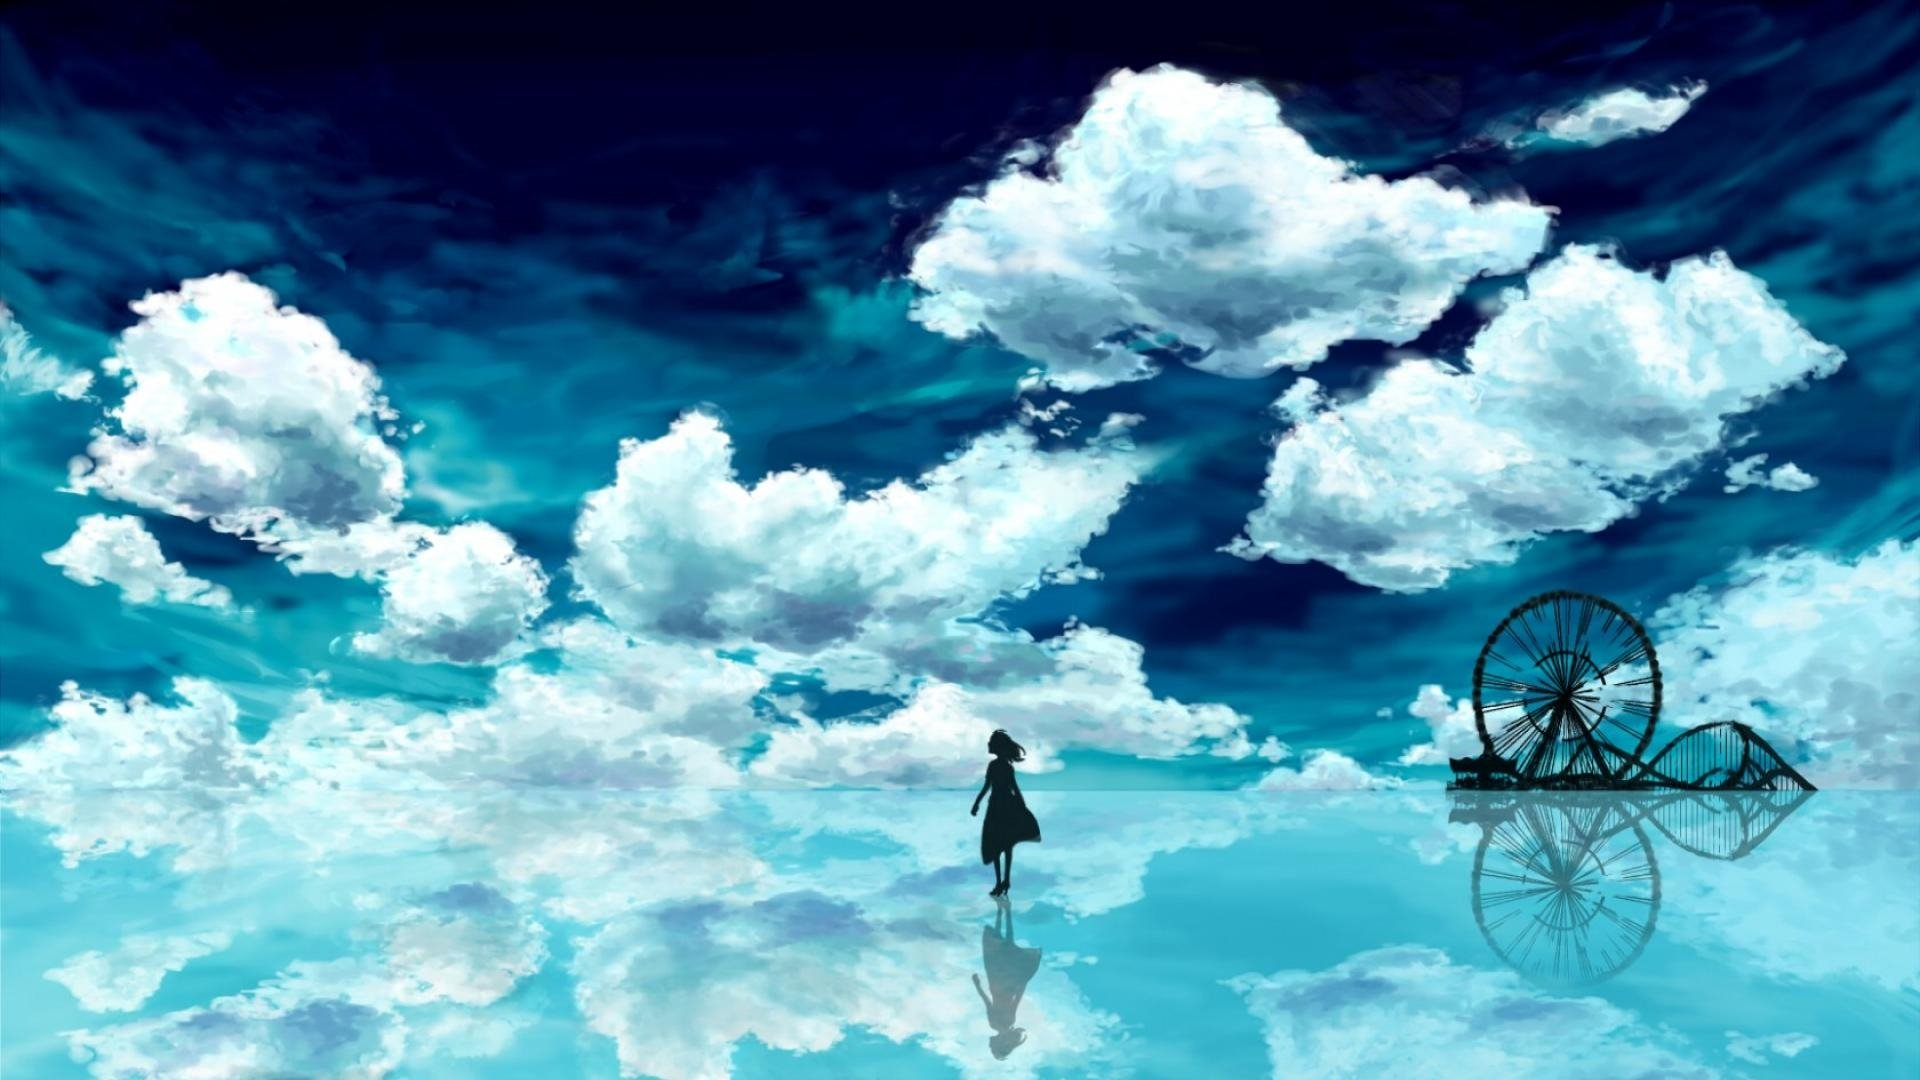 3 sky hd wallpapers | background images - wallpaper abyss